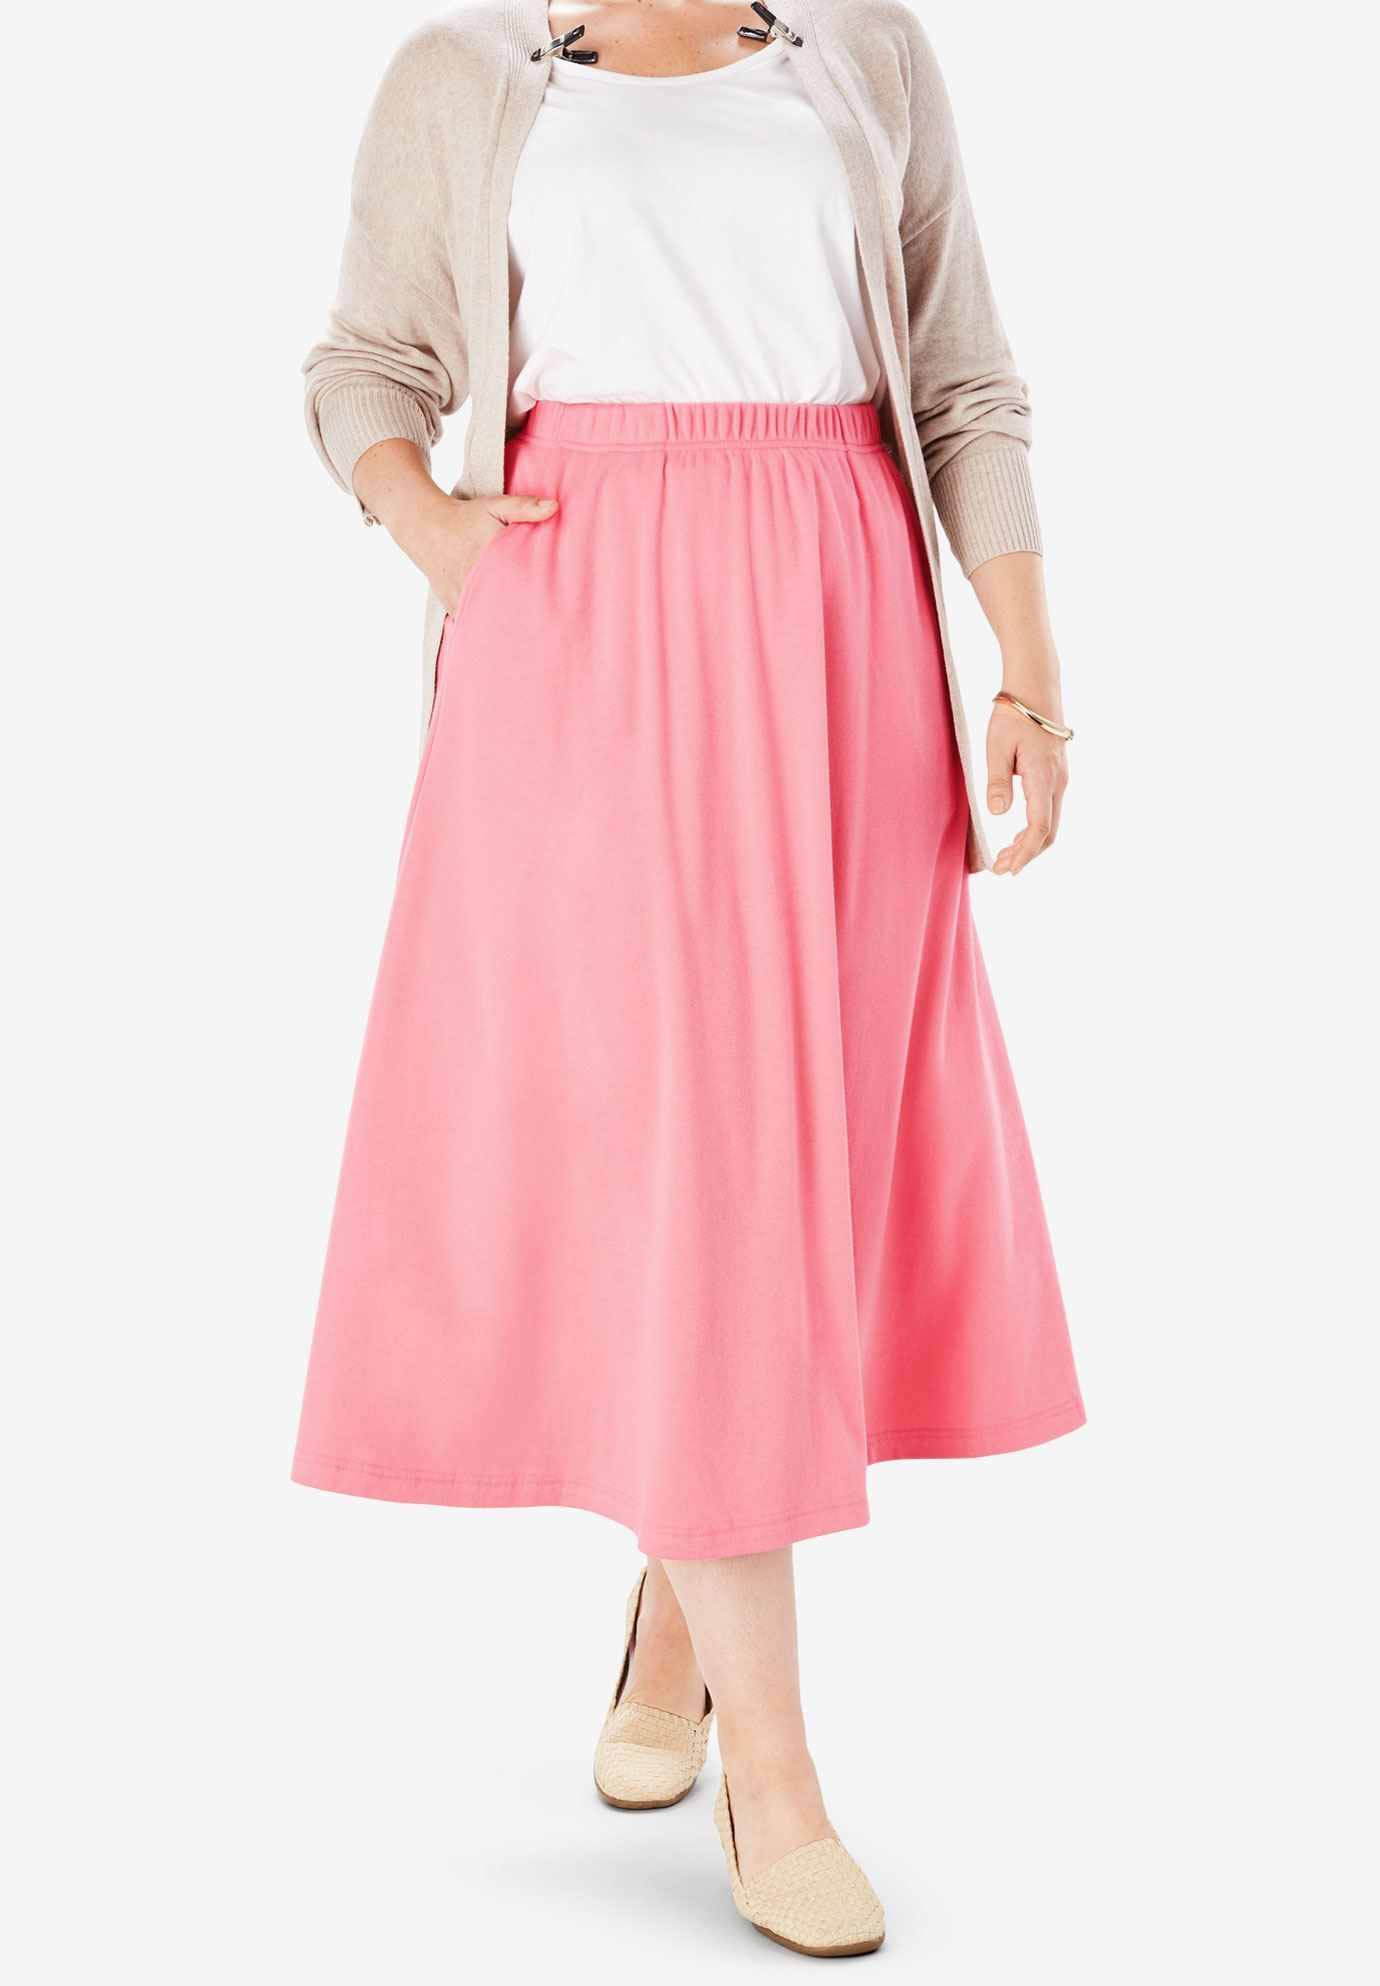 d74304b5e6 7-Day Knit A-Line Skirt   Plus Size Skirts   Woman Within   Clothes ...